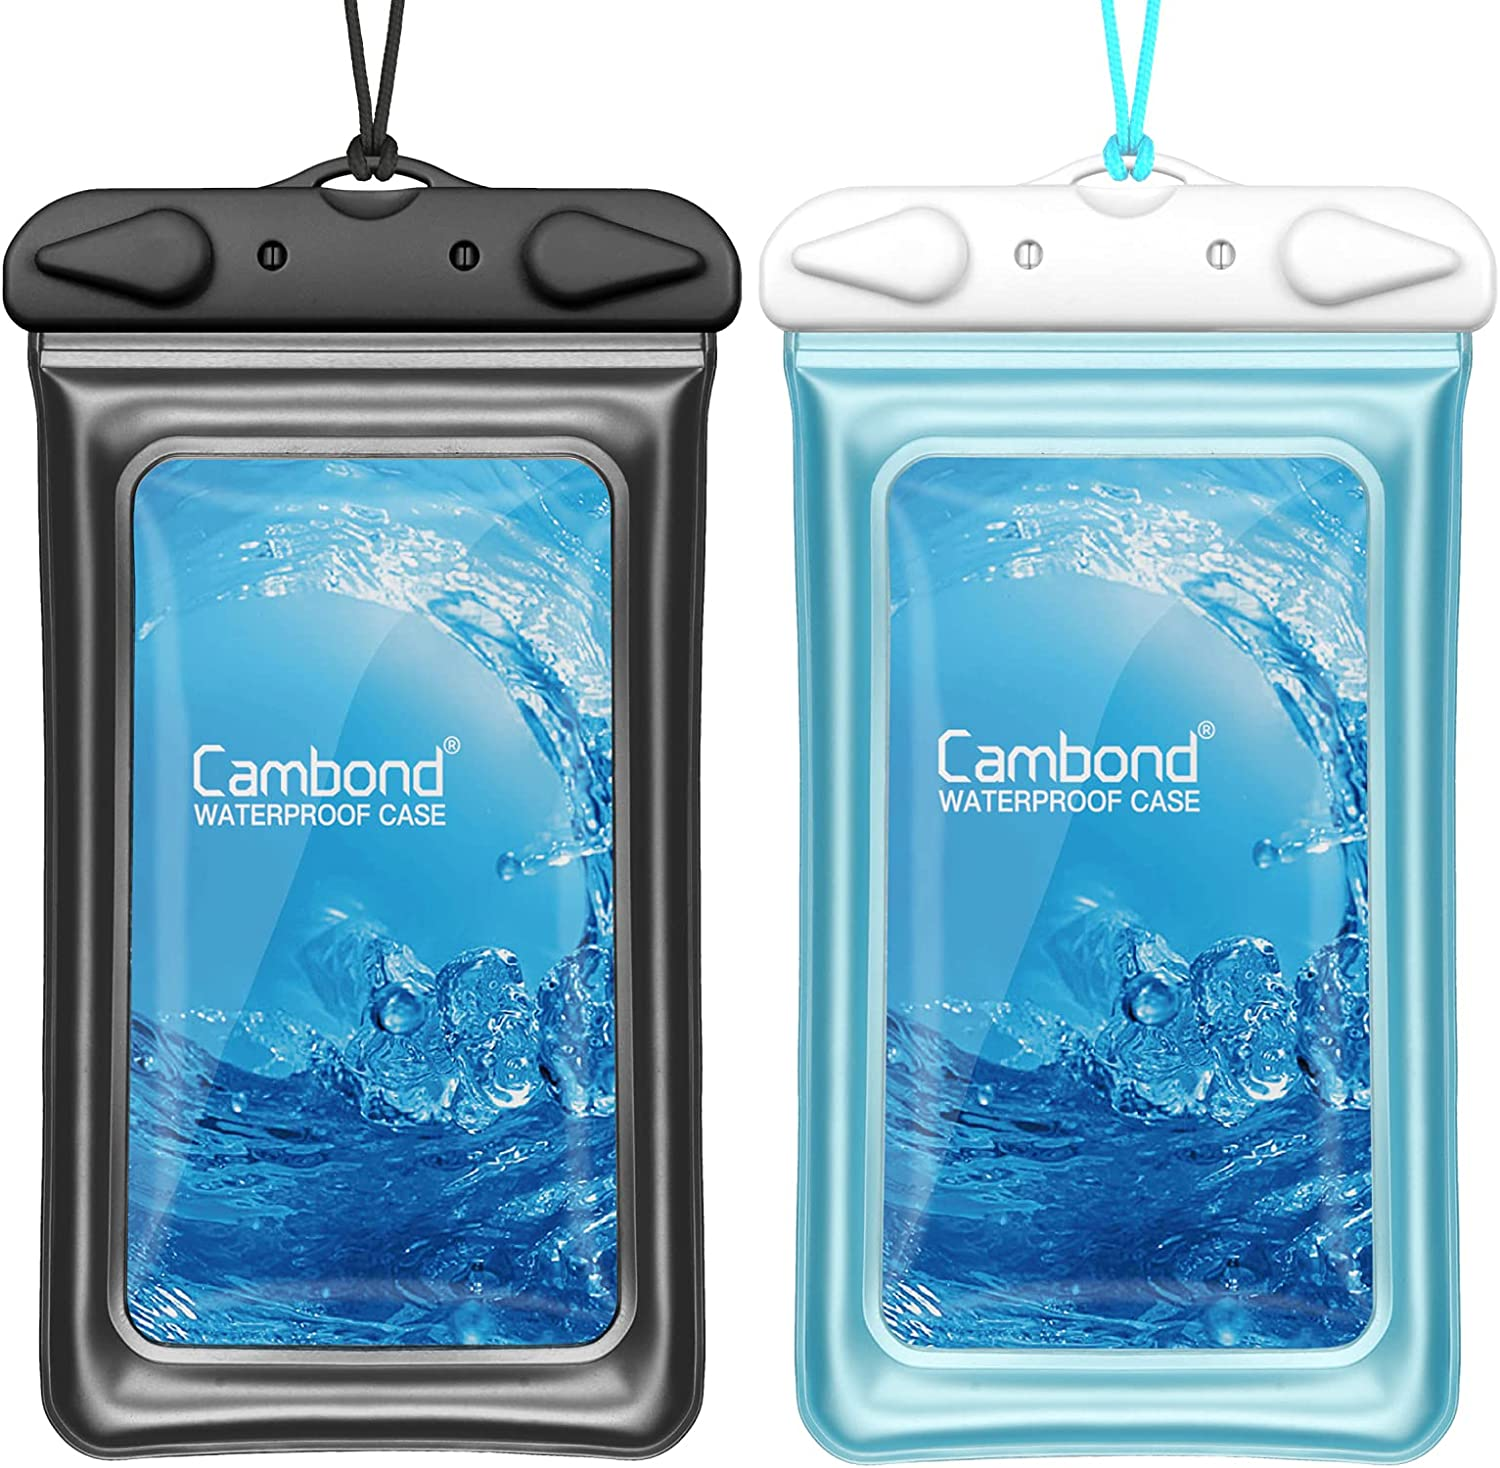 Waterproof Phone Case, Cambond Waterproof Phone Pouch with Strap Both Sides Clear Dry Bag for iPhone 12 Pro Max XR 8 7 Galaxy, Snorkeling Cruise Ship Kayaking Beach Accessories for Vacation, 2 Pack